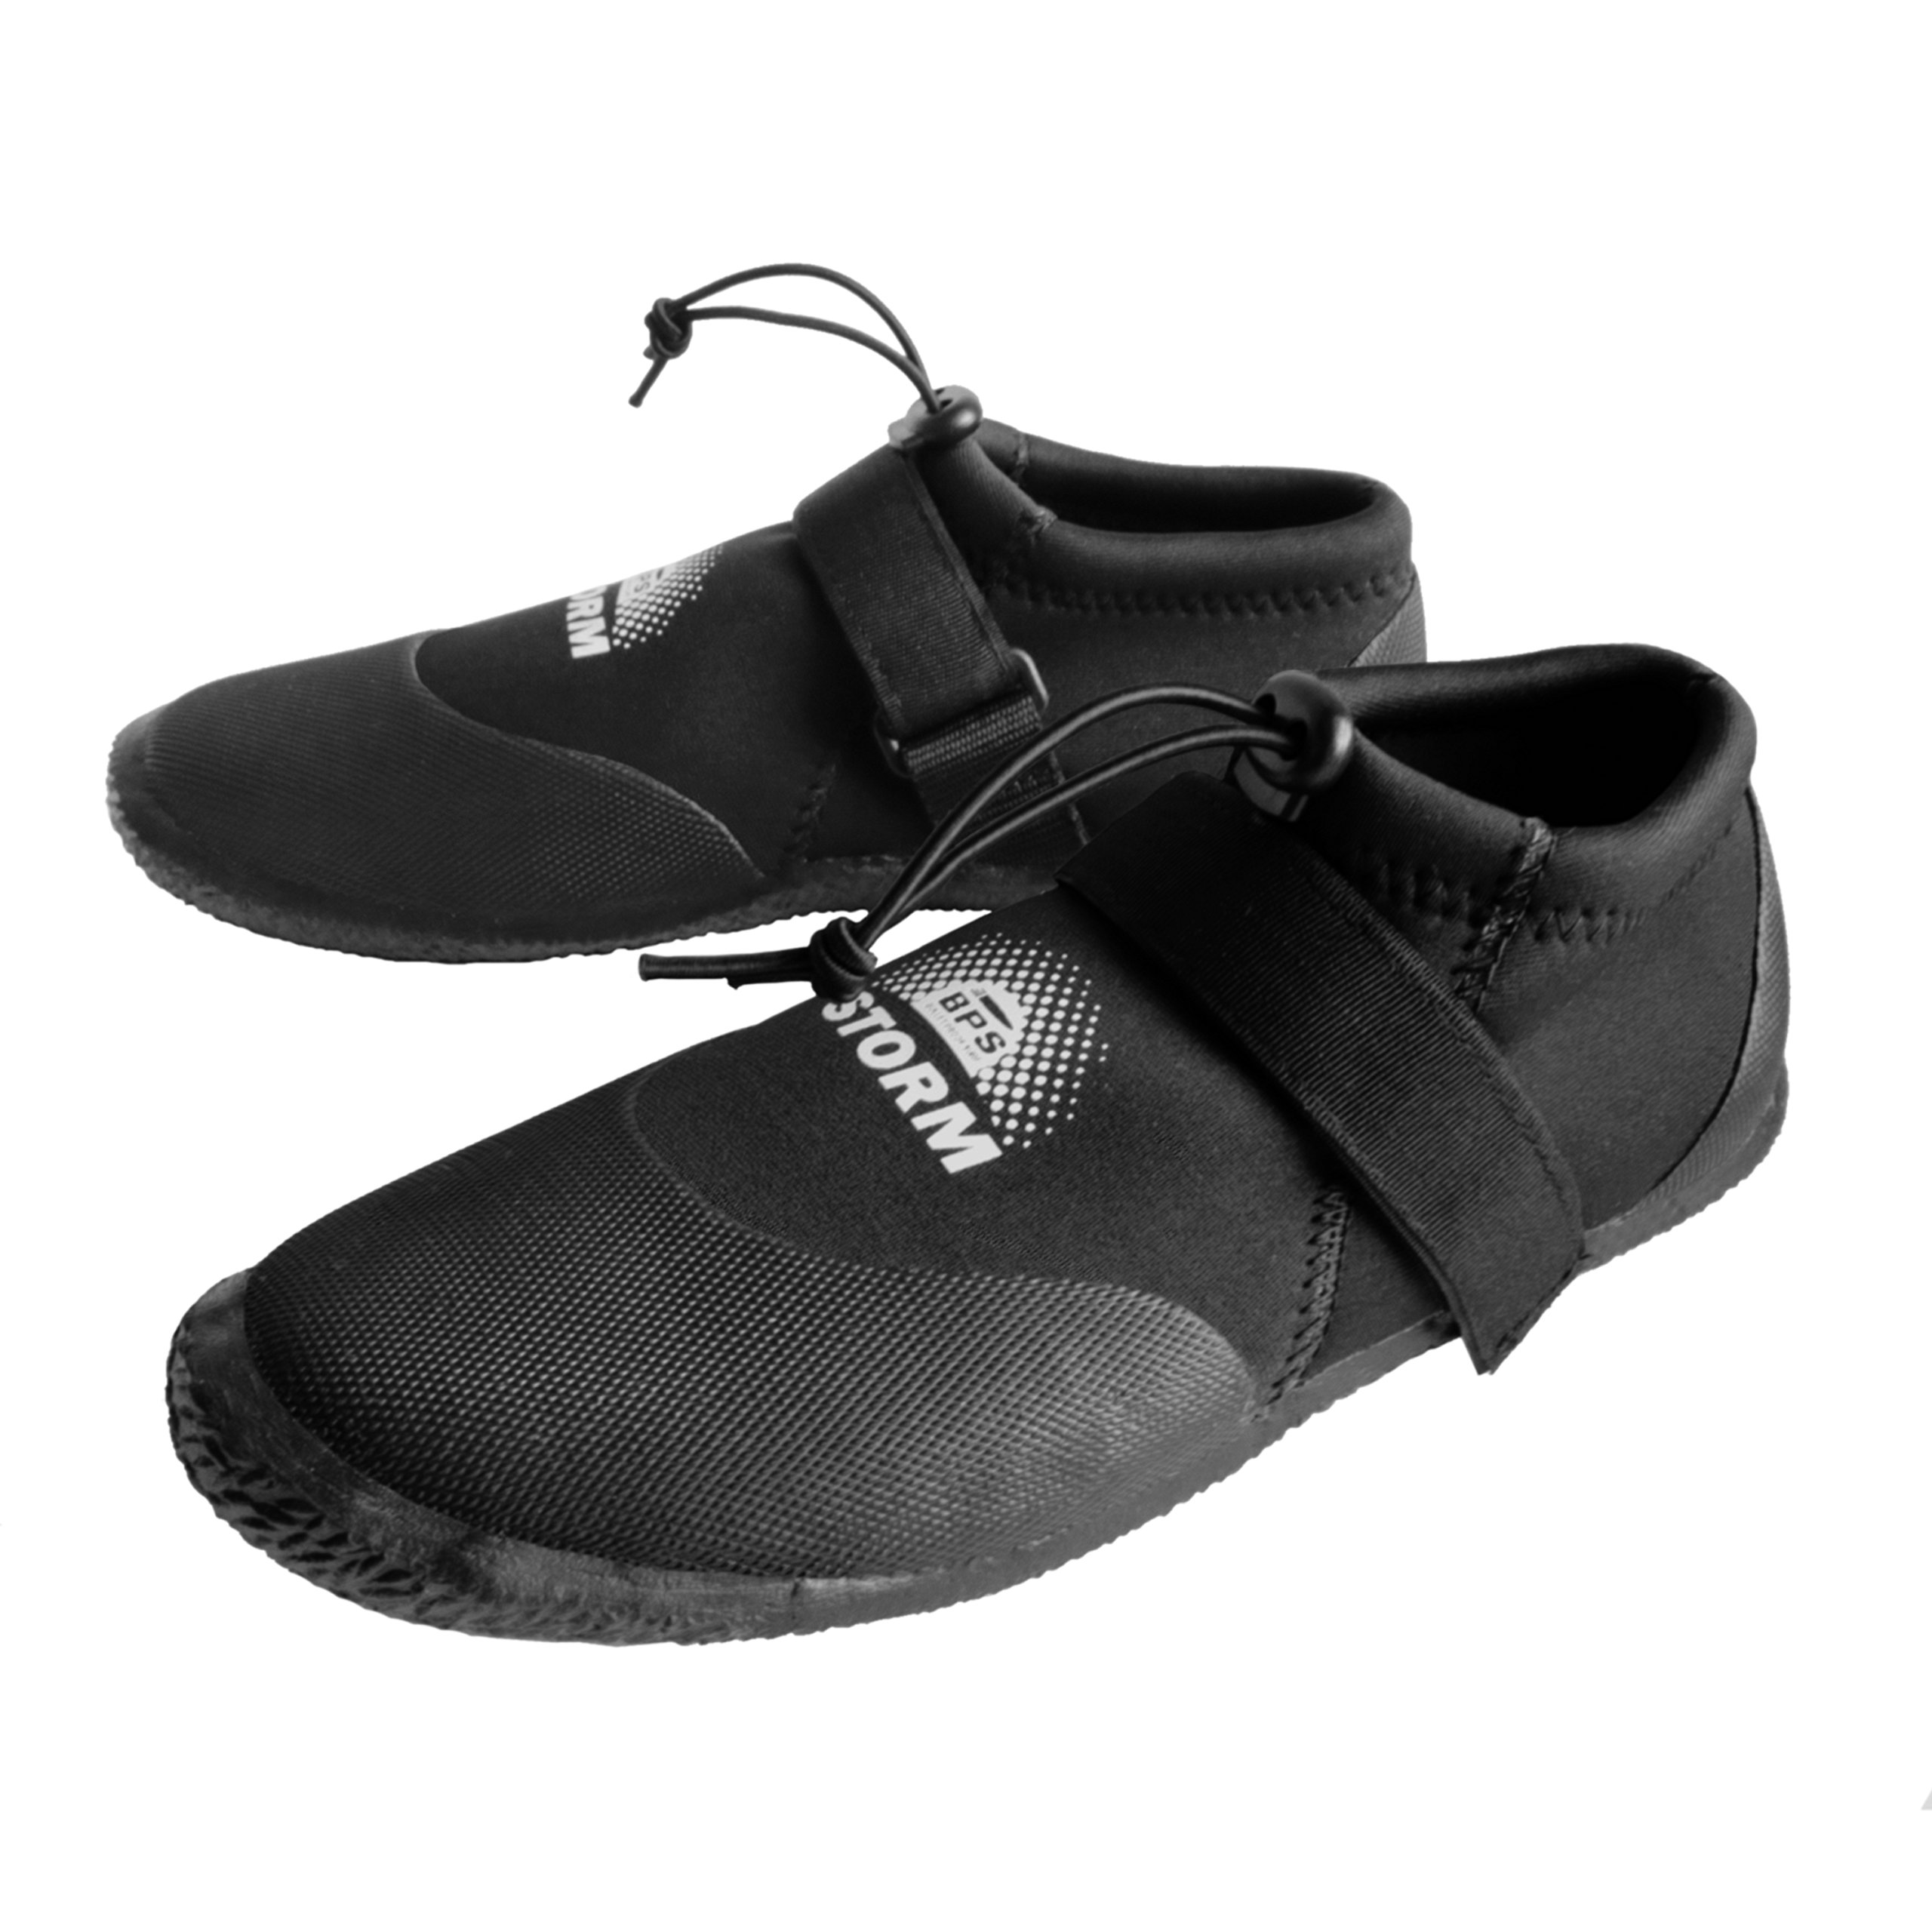 BPS Neoprene Watersports Dive Shoes - Size 6